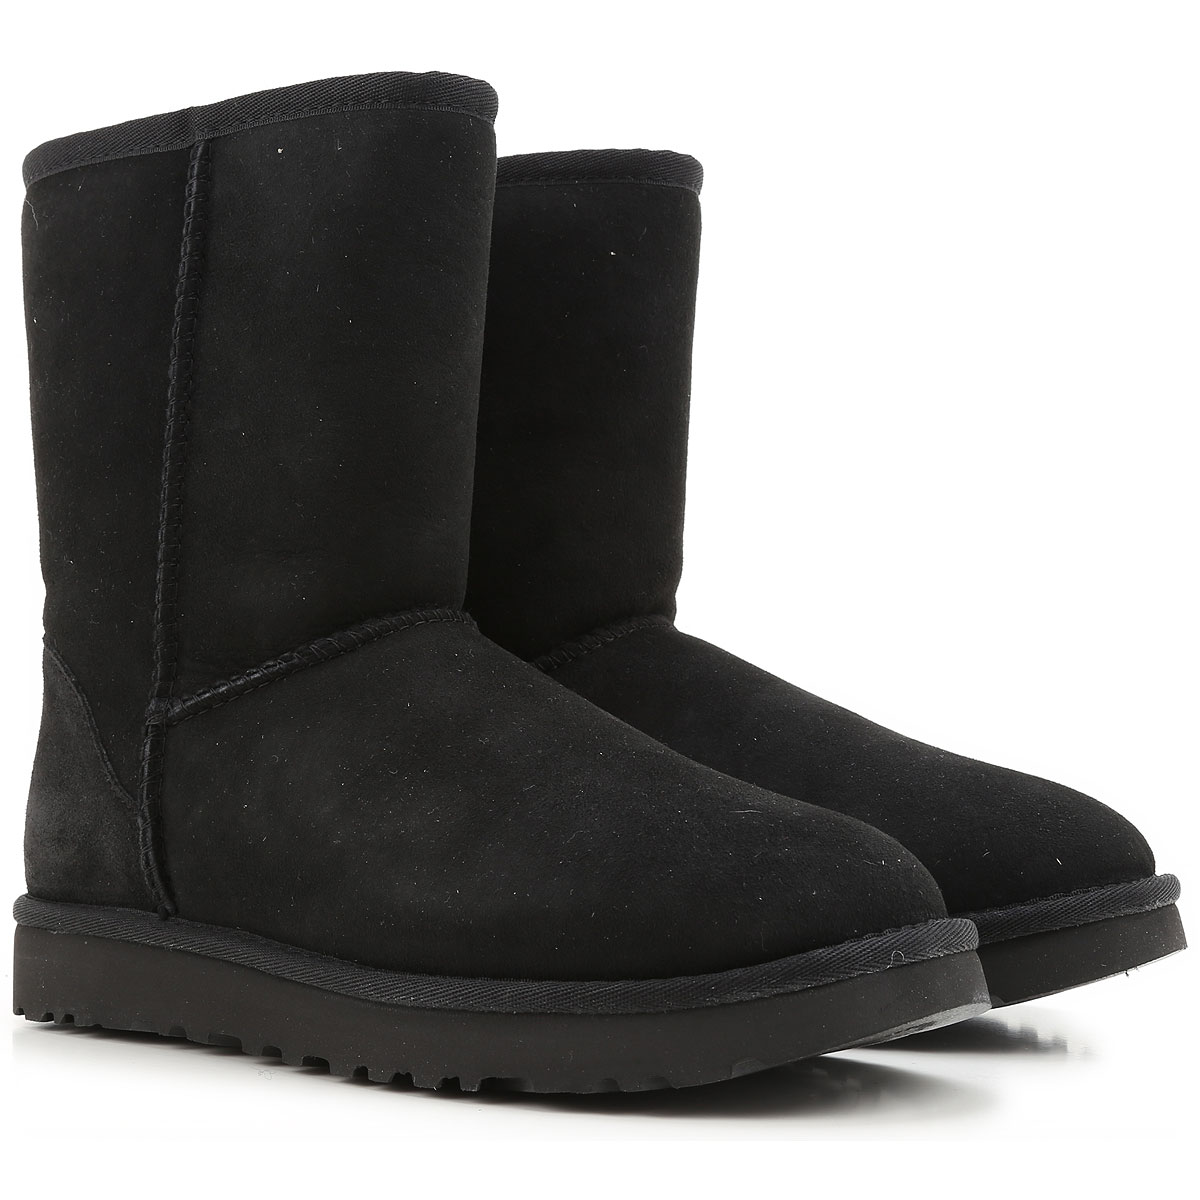 Image of UGG Boots for Women, Booties, Black, suede, 2017, USA 5 UK 3 5 EU 36 JAPAN 220 USA 6 UK 4 5 EU 37 JAPAN 230 USA 7 UK 5 5 EU 38 JAPAN 240 USA 8 UK 6 5 EU 39 JAPAN 250 USA 9 UK 7 5 EU 40 JAPAN 260 USA 10 UK 8 5 EU 41 JAPAN 270